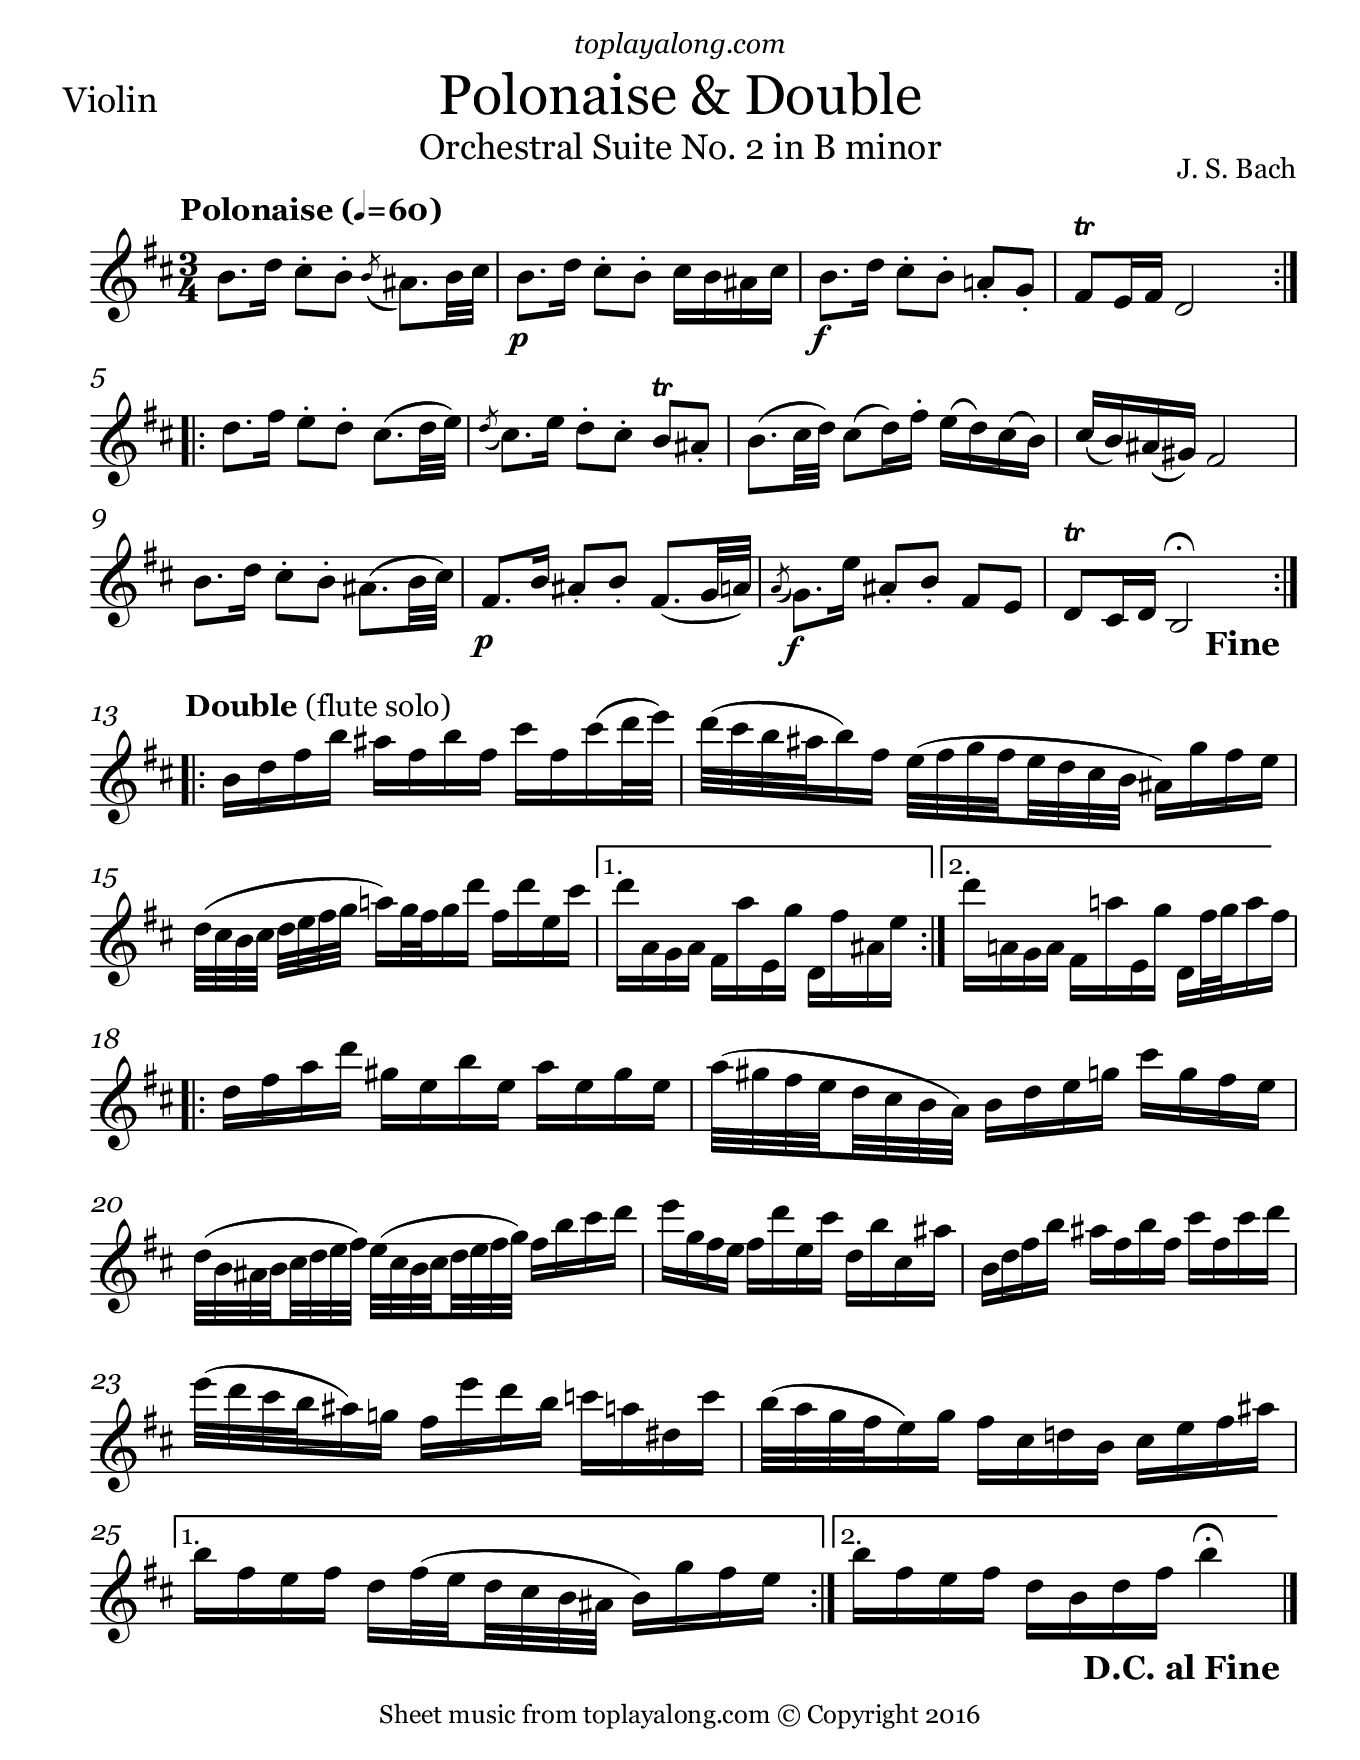 Orchestral Suite No. 2 (V. Polonaise & Double) by J. S. Bach. Sheet music for Violin, page 1.